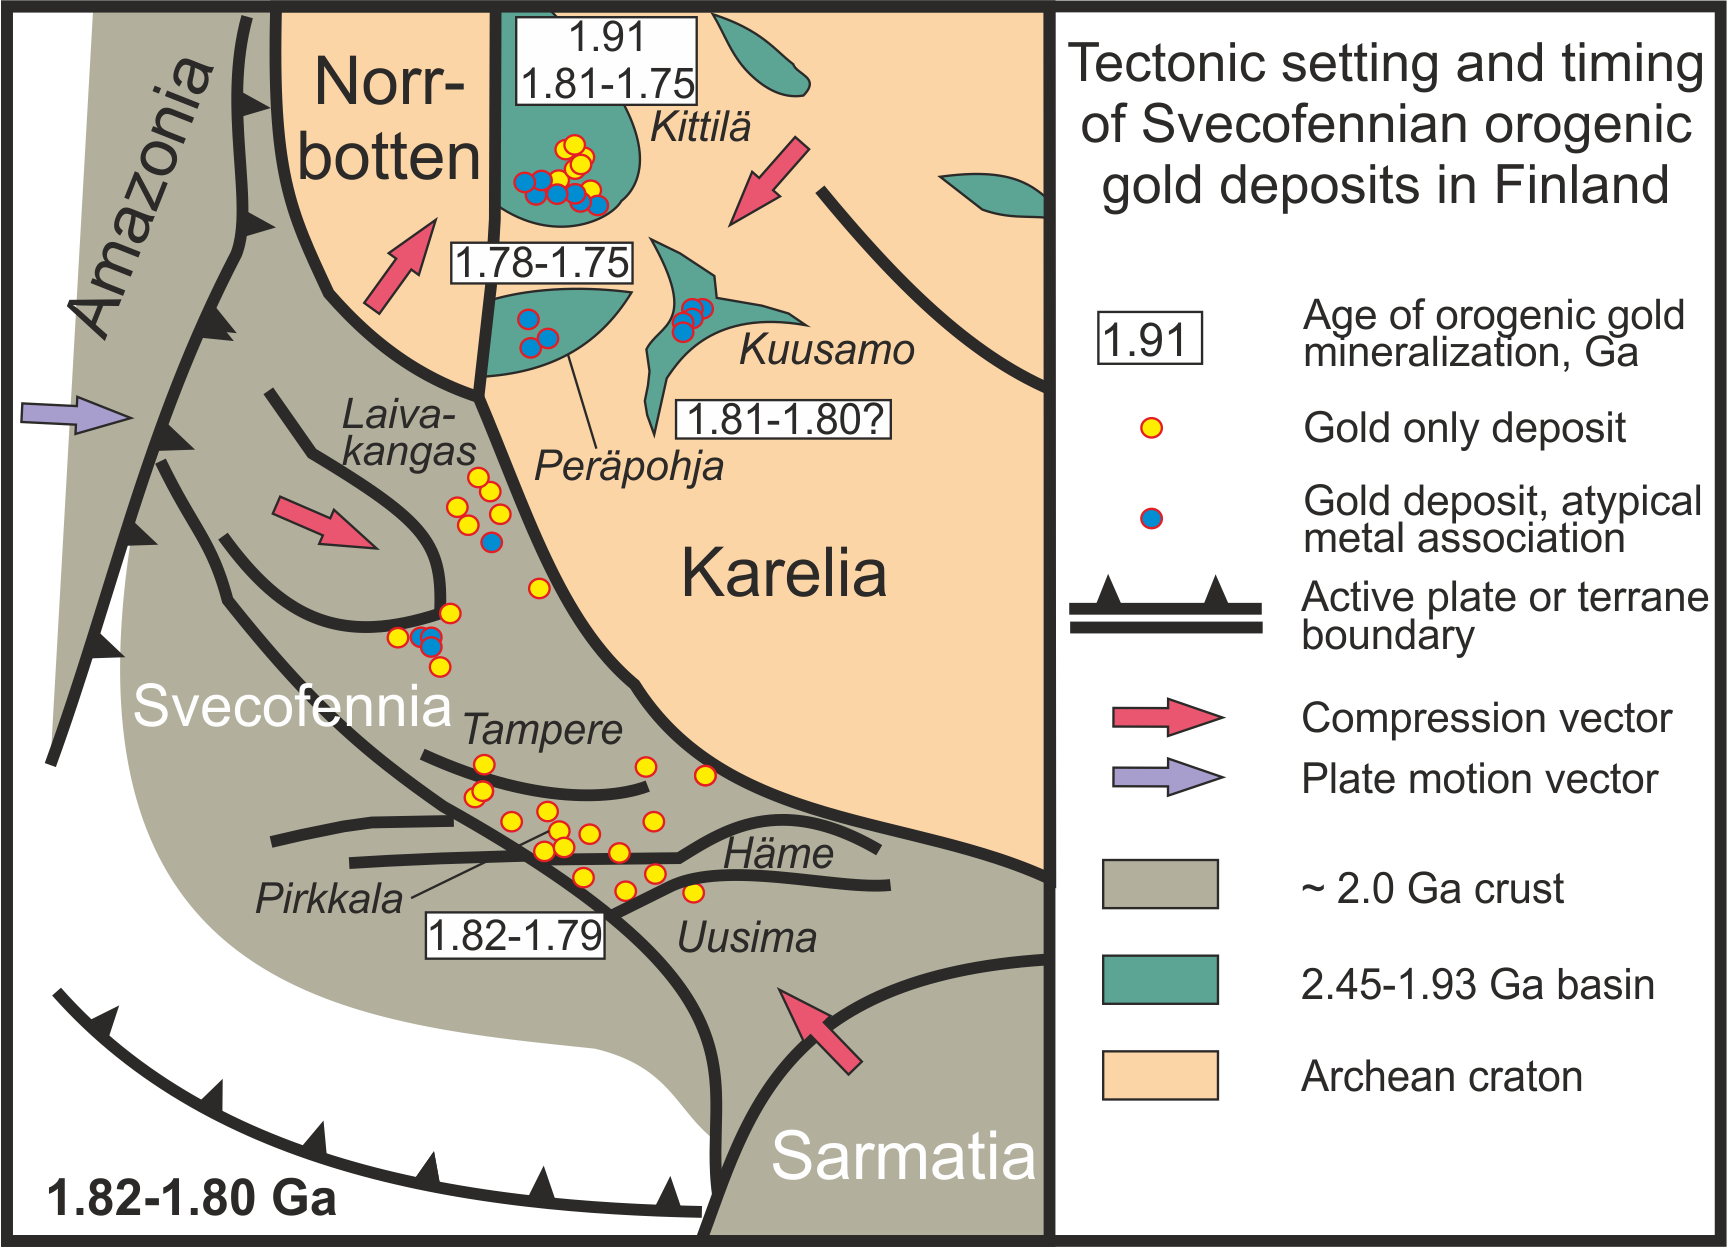 Tectonic setting and timing of Svecofennian orogenic gold deposits in Finland